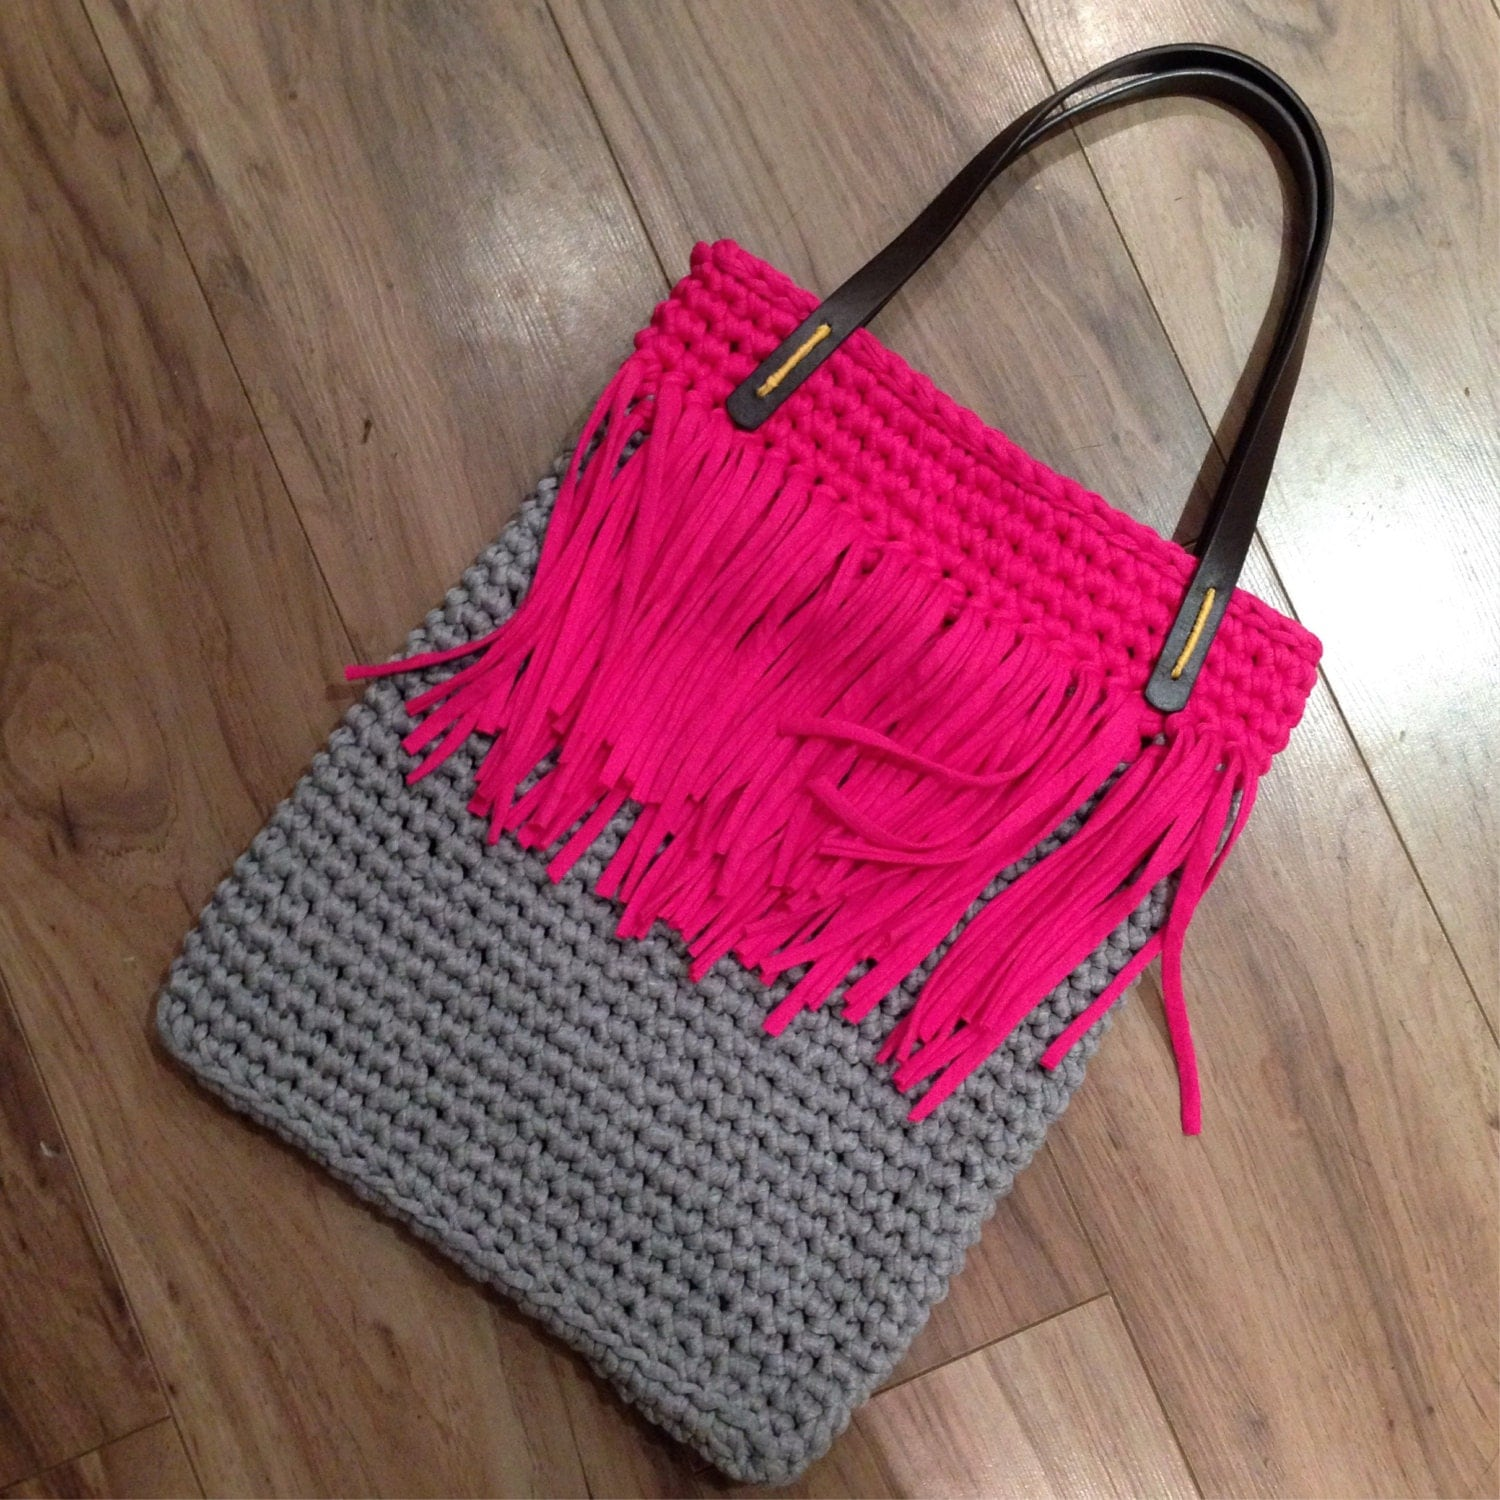 Yarn Bag Pattern : Tassel Tote T-shirt Yarn Crochet Bag Pattern